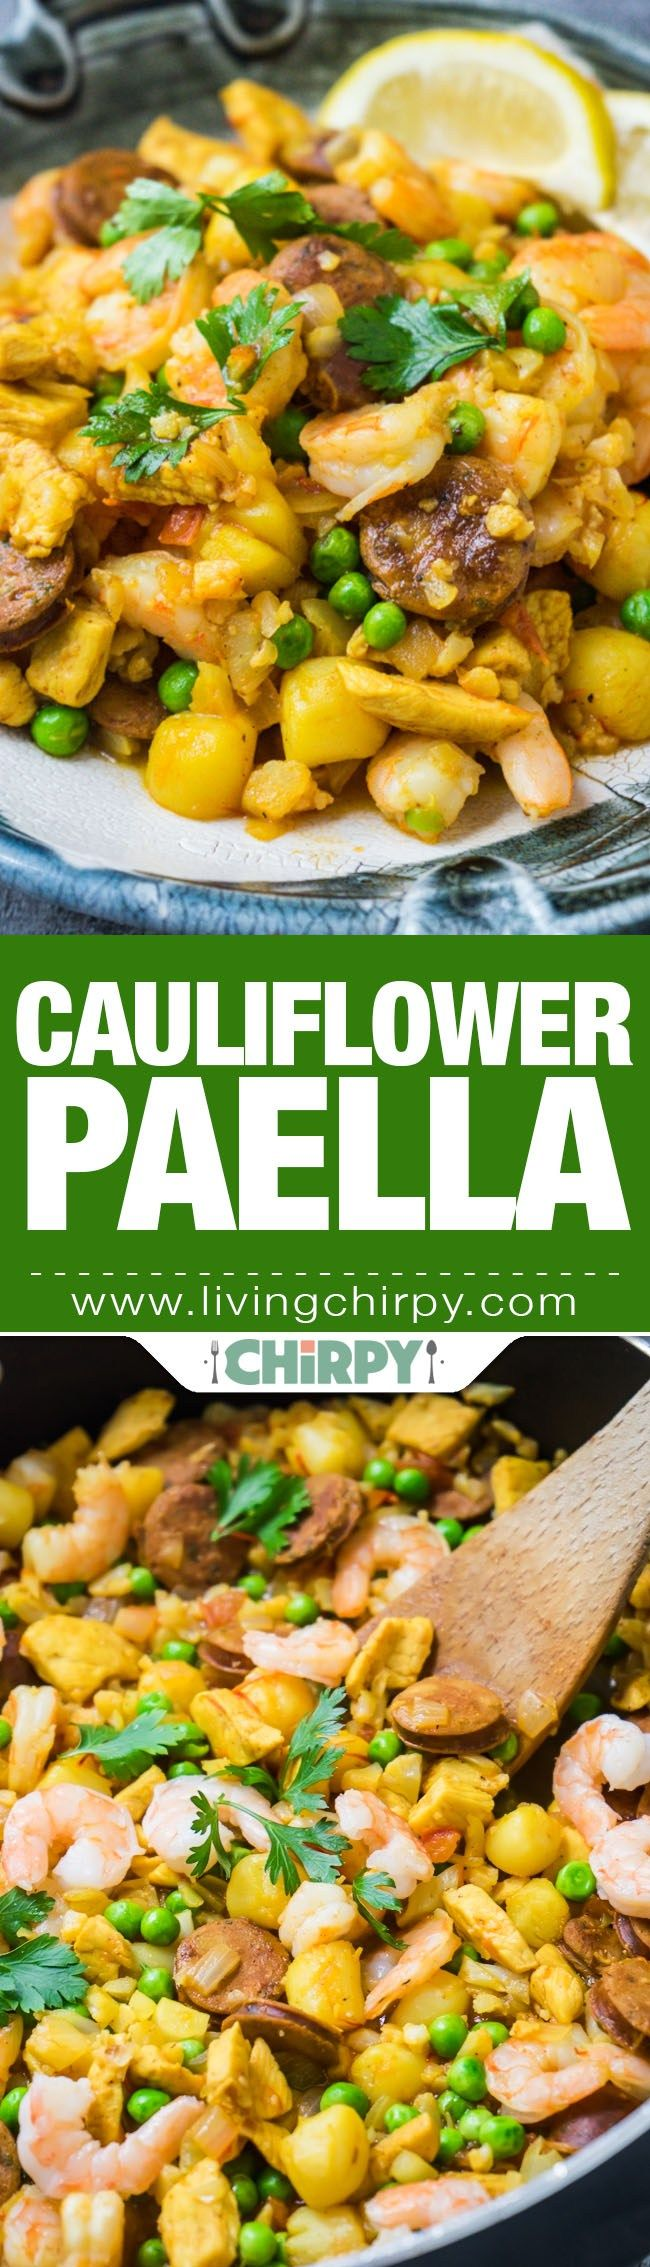 Quick and Easy Low Carb Cauliflower Paella. Get your seafood fix with non of the carbs. Paella made with cauliflower rice.